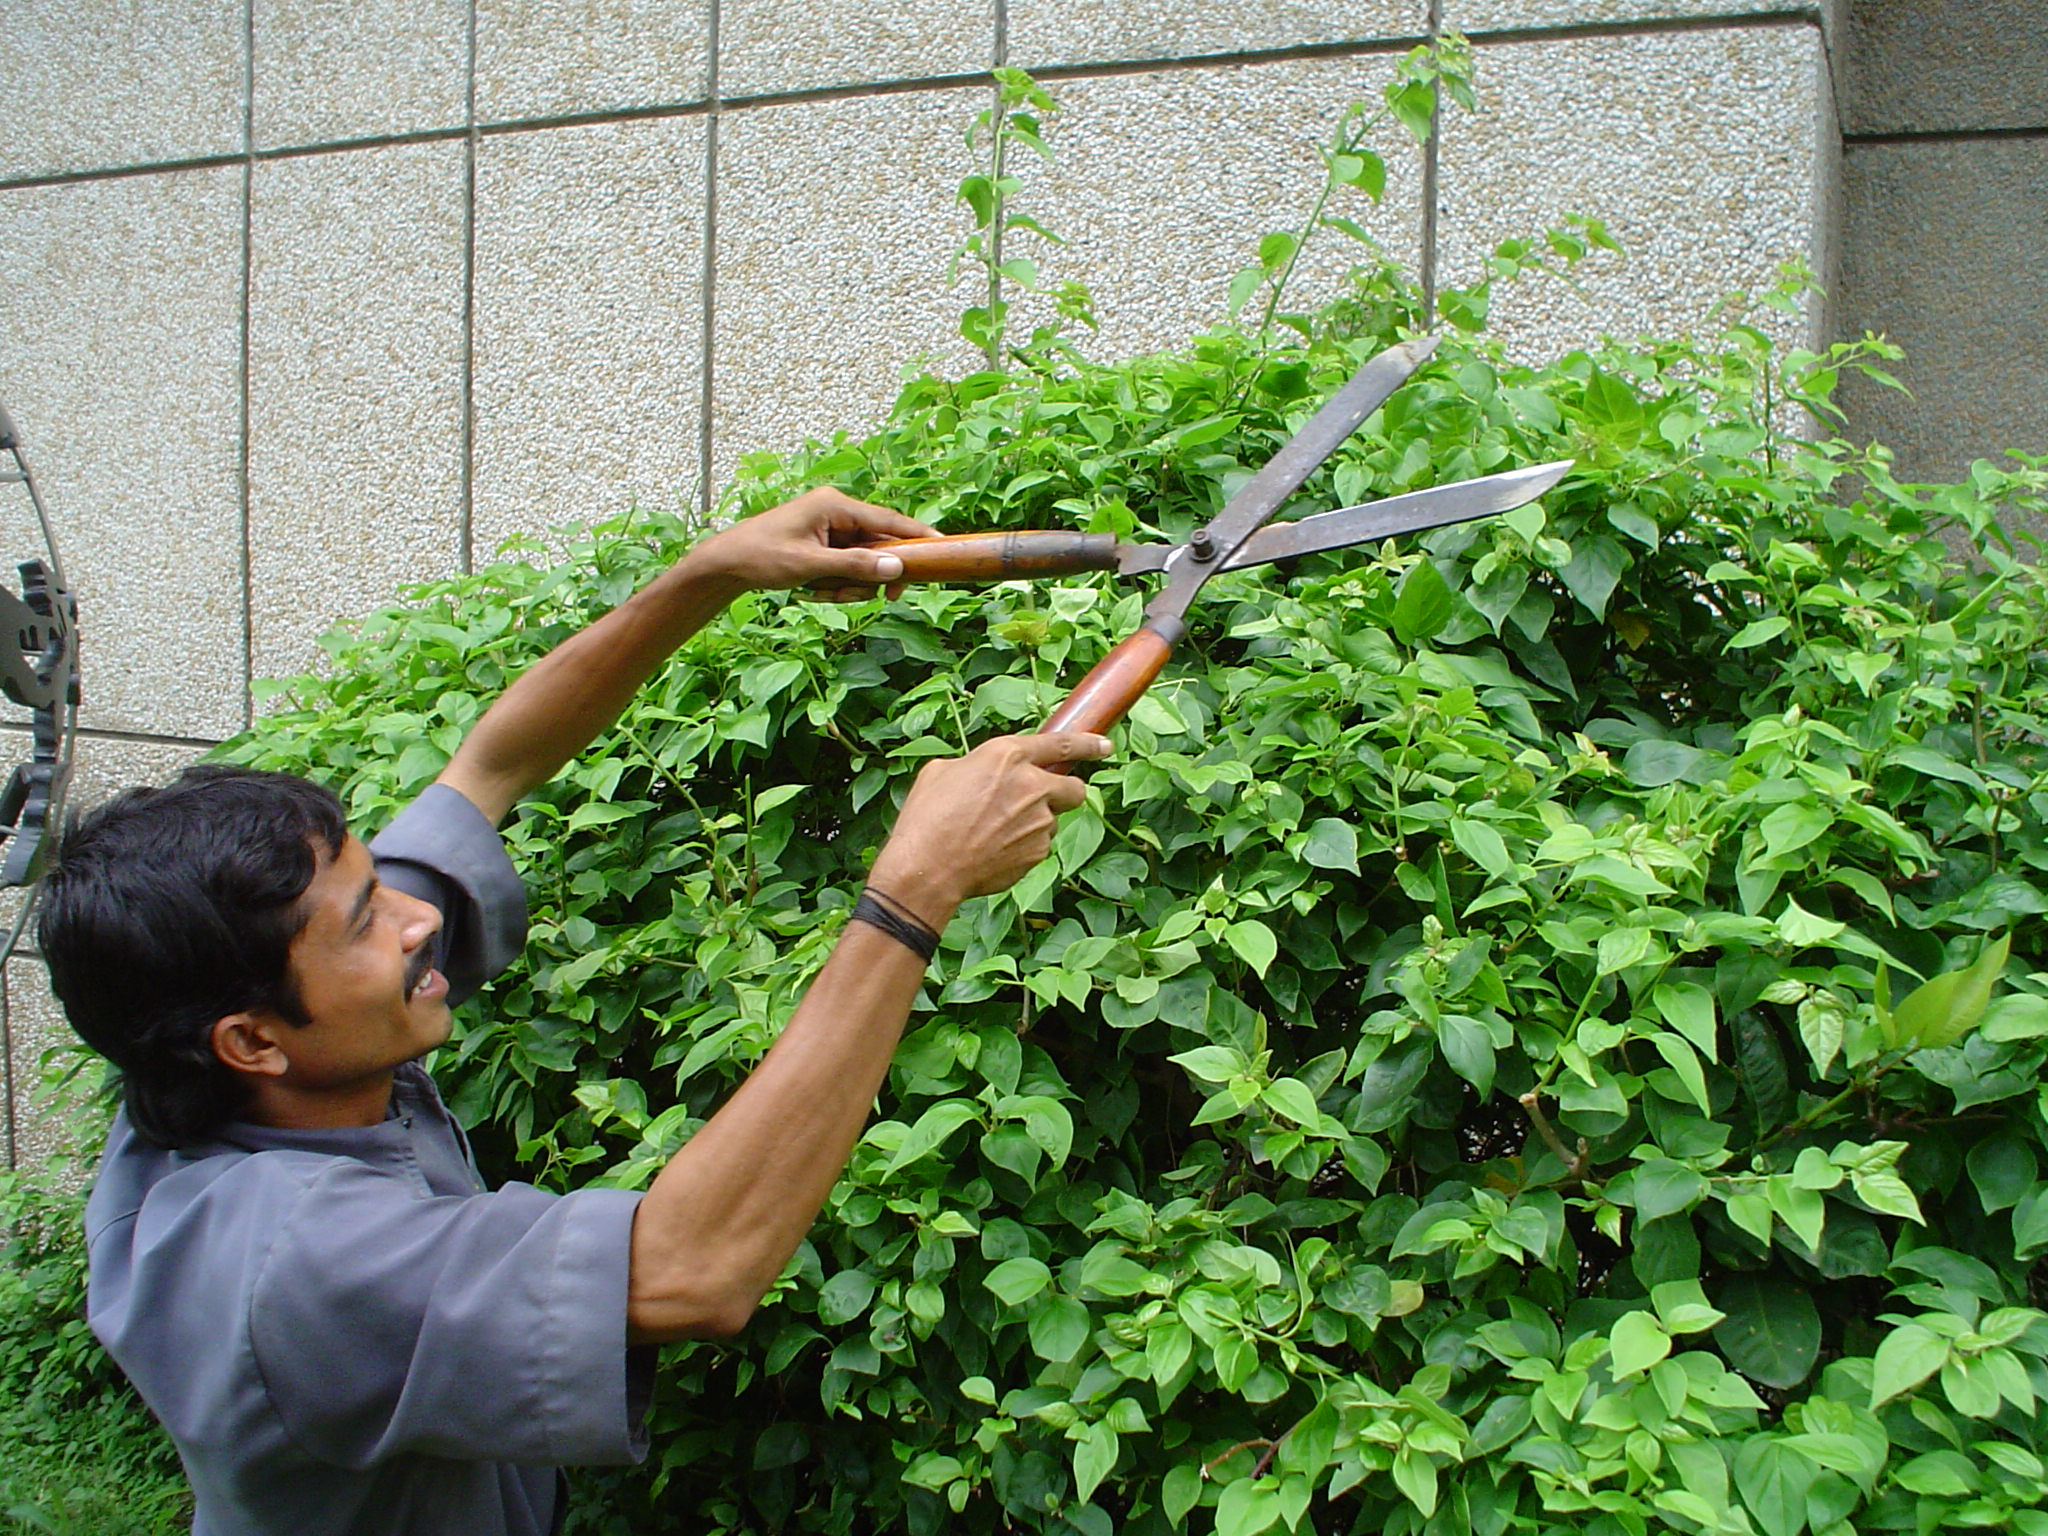 Hedge trimmer wikiwand for Gardening tools wikipedia